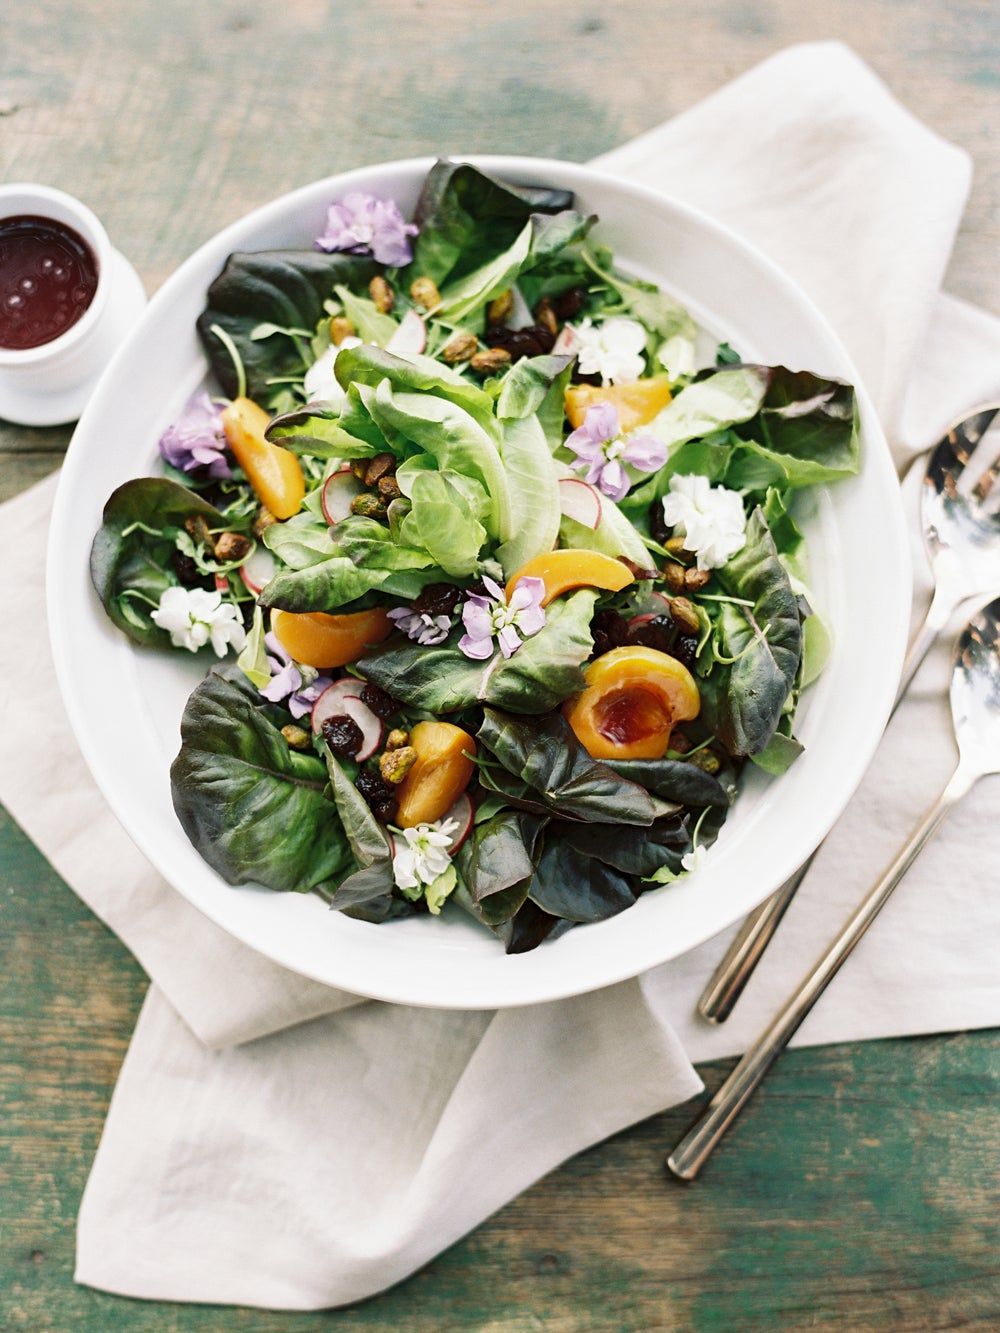 white bowl with salad of dark greens, oranges, lilac flowers